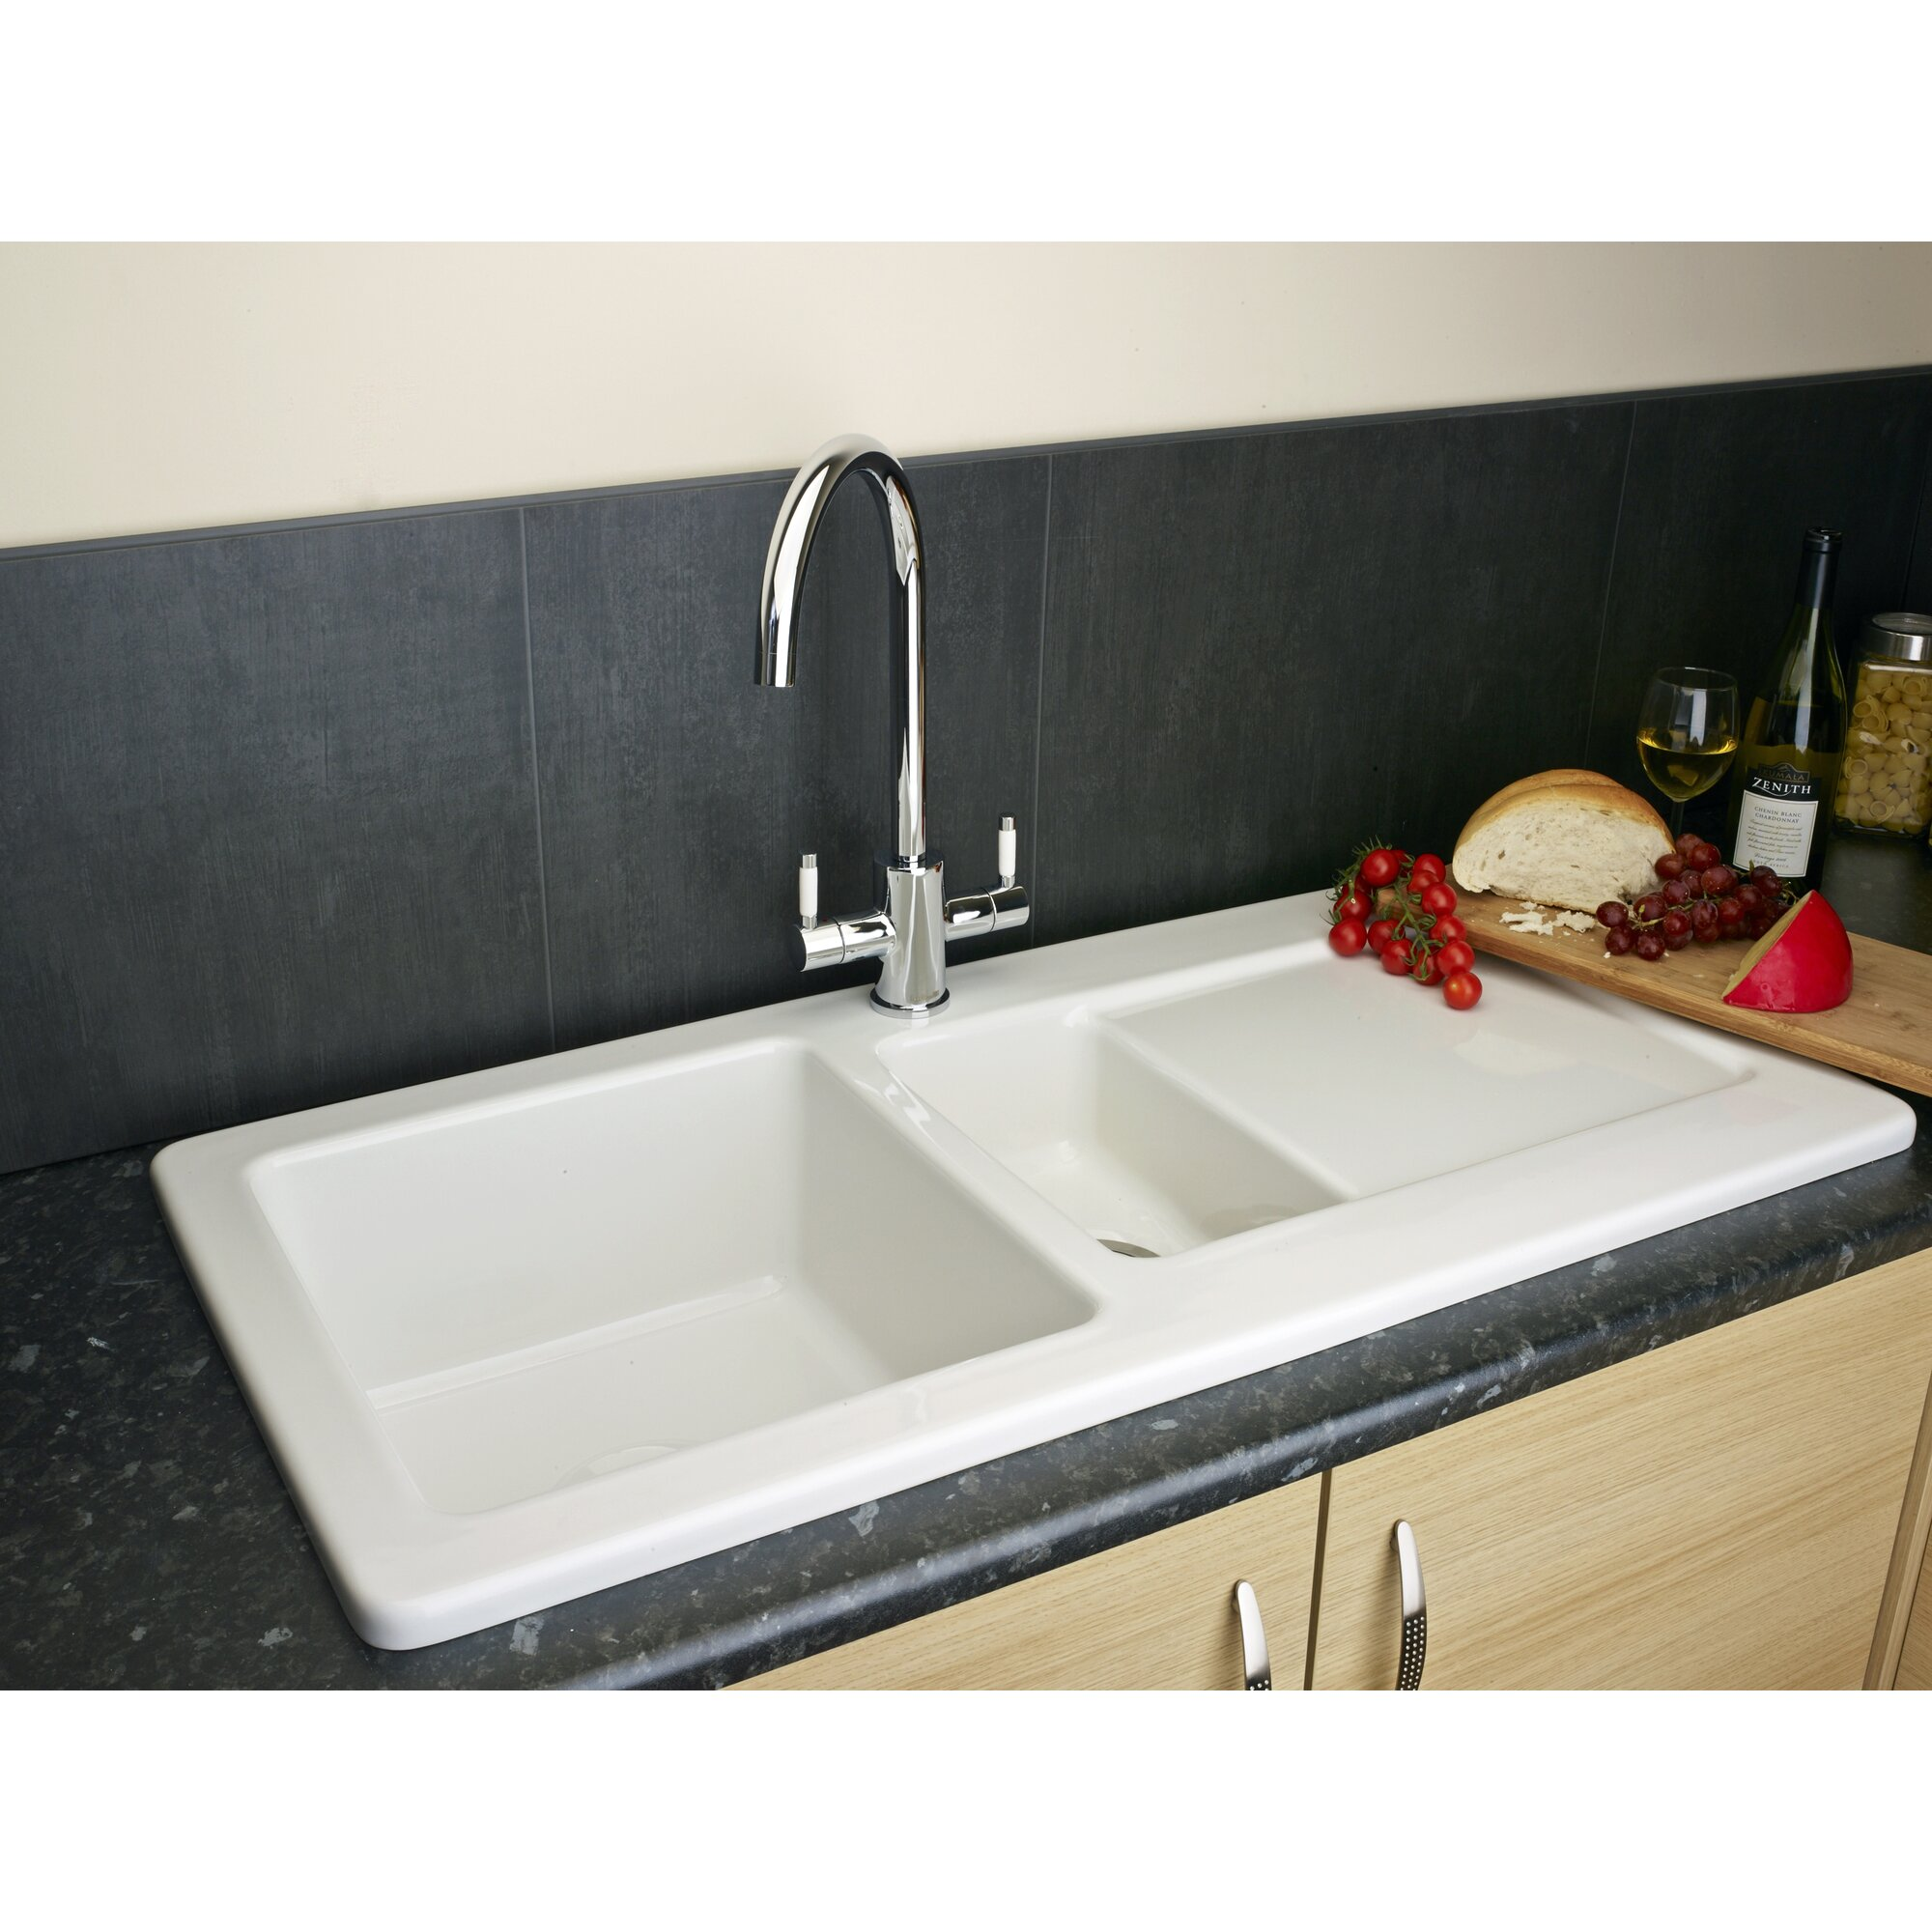 116 cm stainless steel double bowl single drainer inset sink right - 100cm X 50cm Inset Kitchen Sink With Waste Outlet